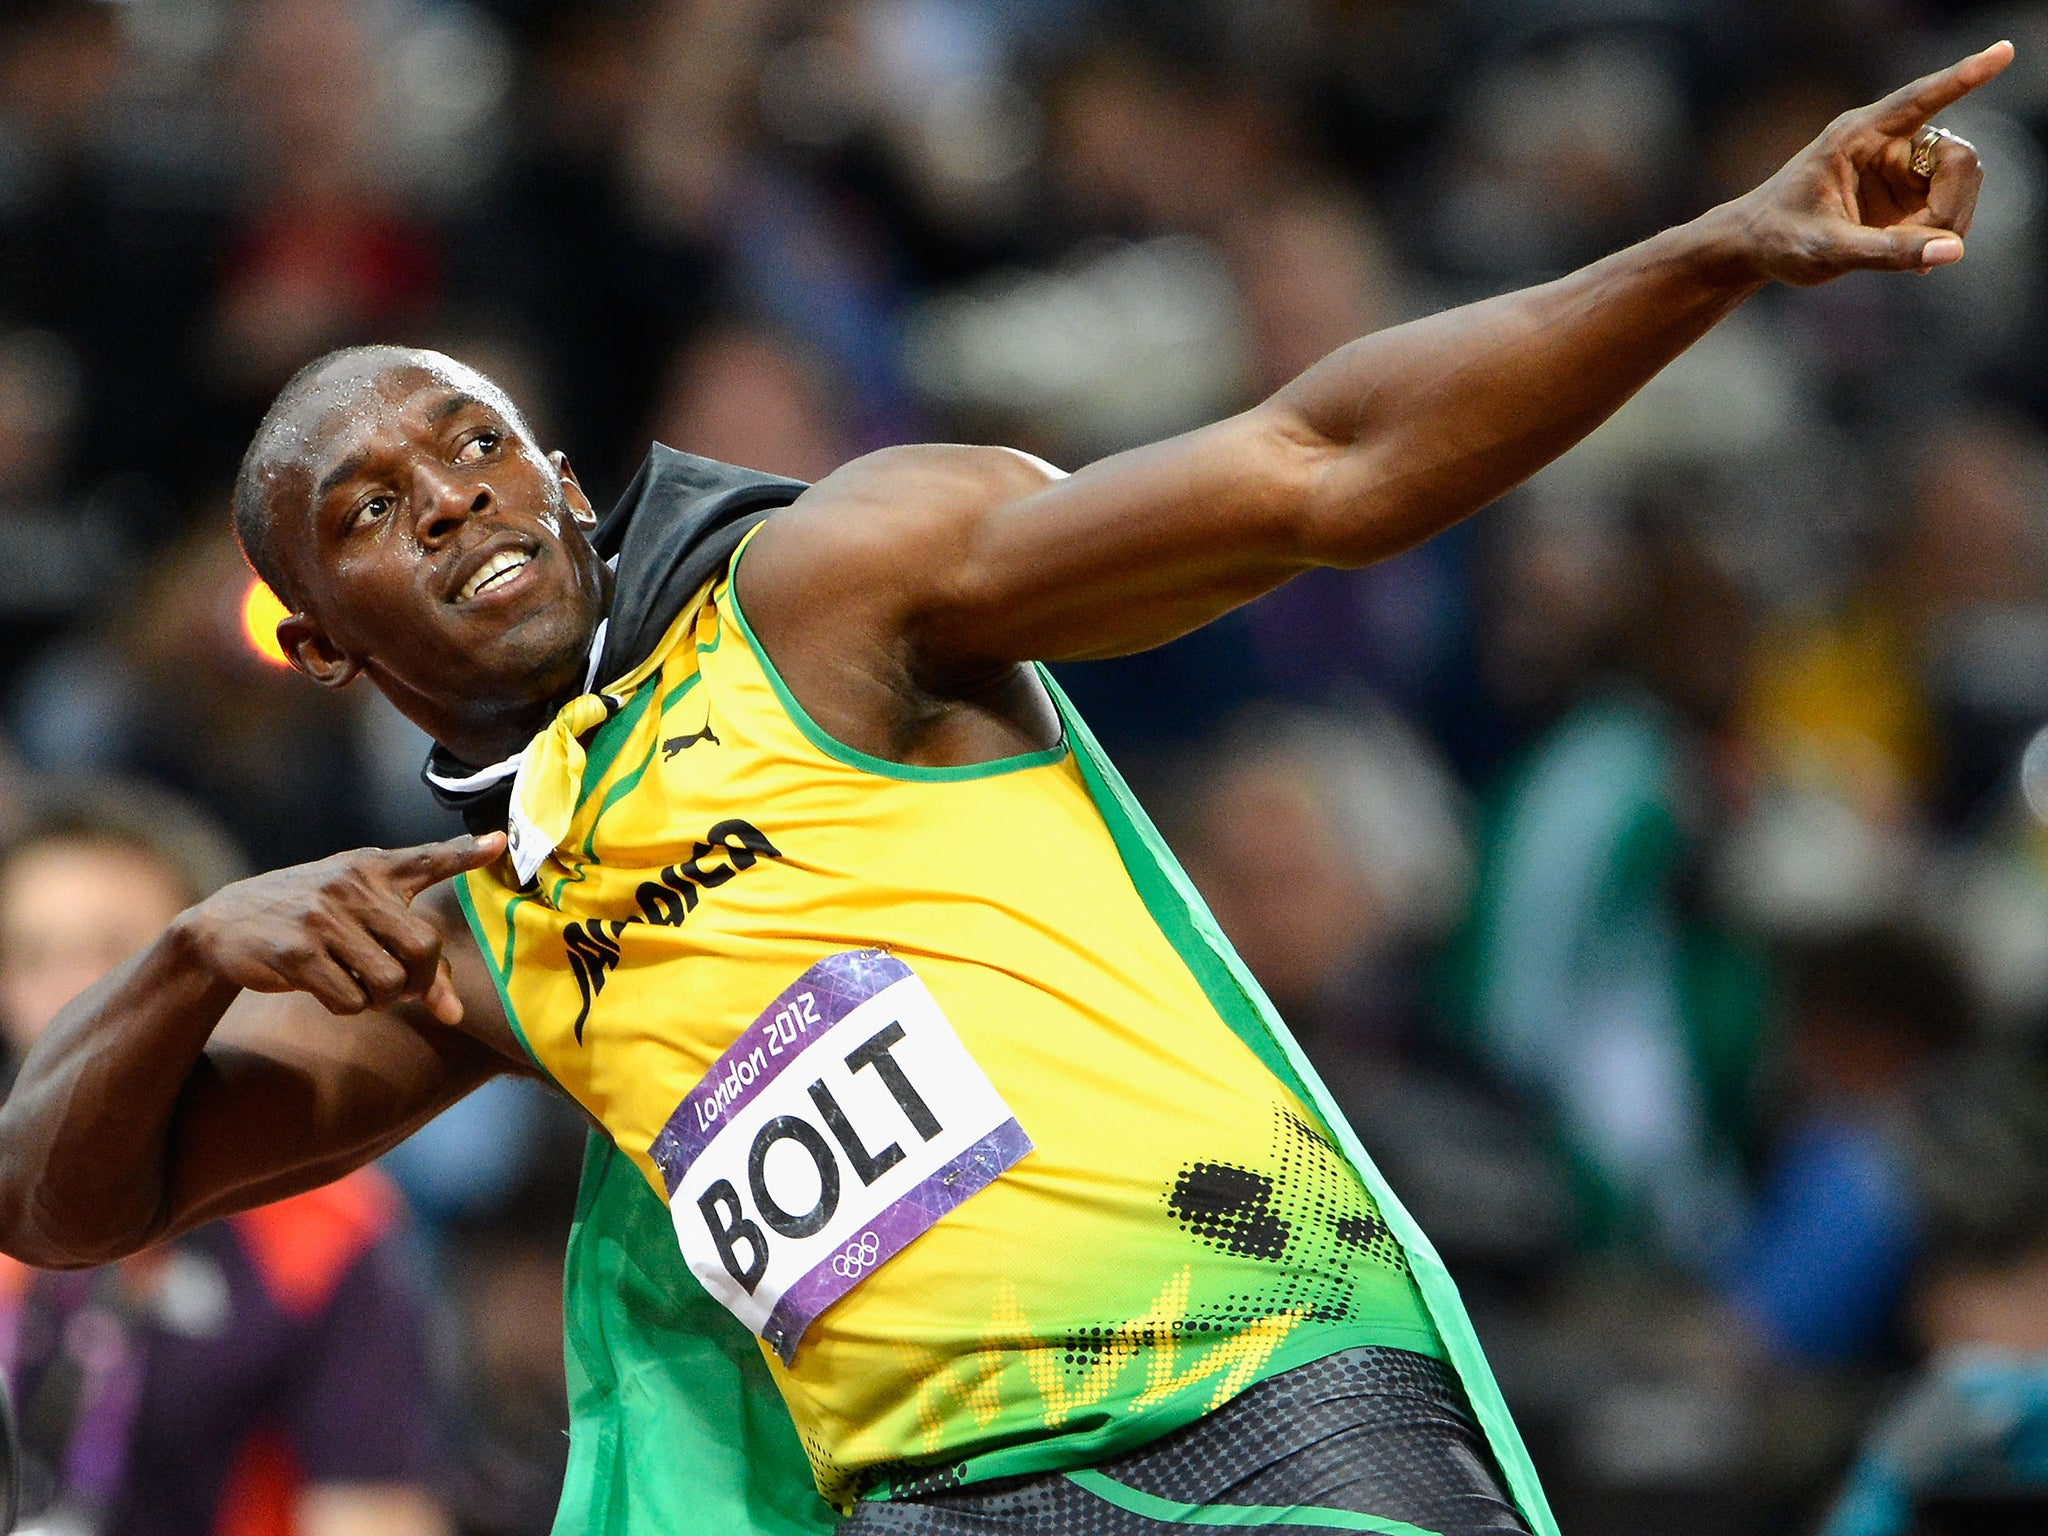 usain-bolt-pose.jpg